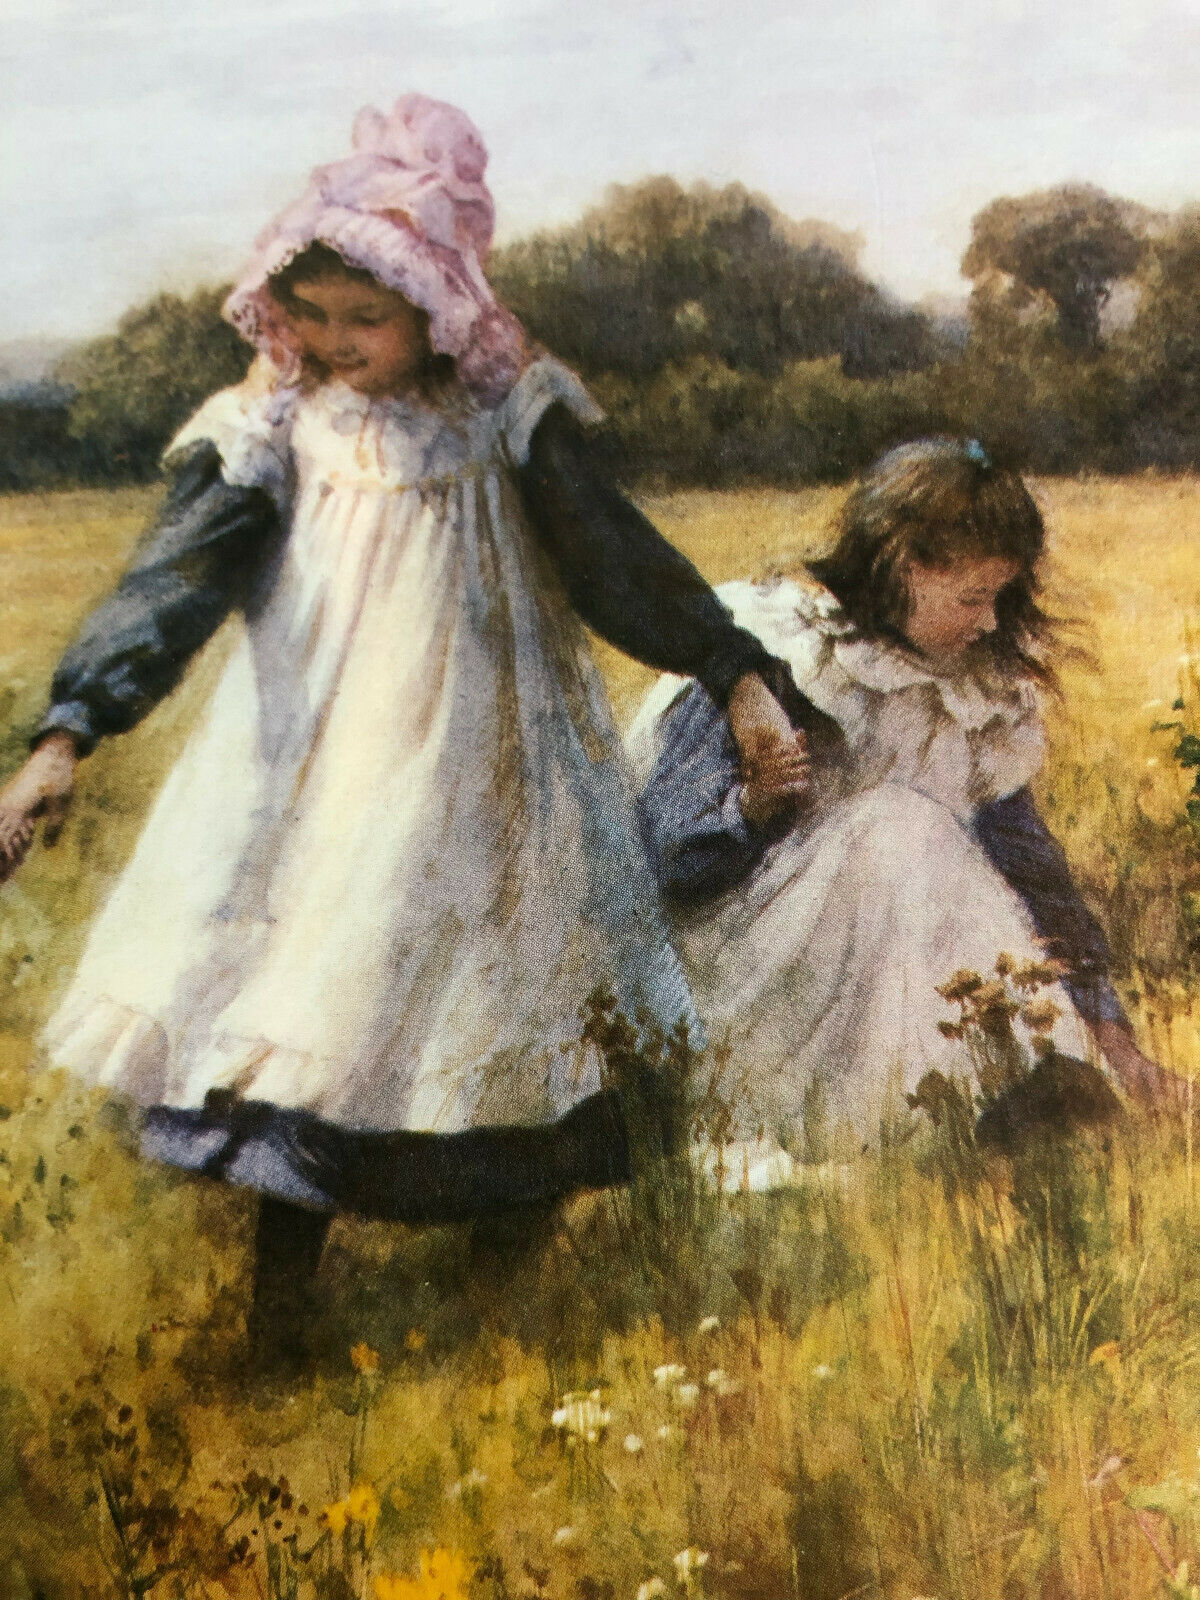 Picking Wild Flowers By William Affleck C.1905, 11 X 8.5 Print 100 Mint  - $23.00